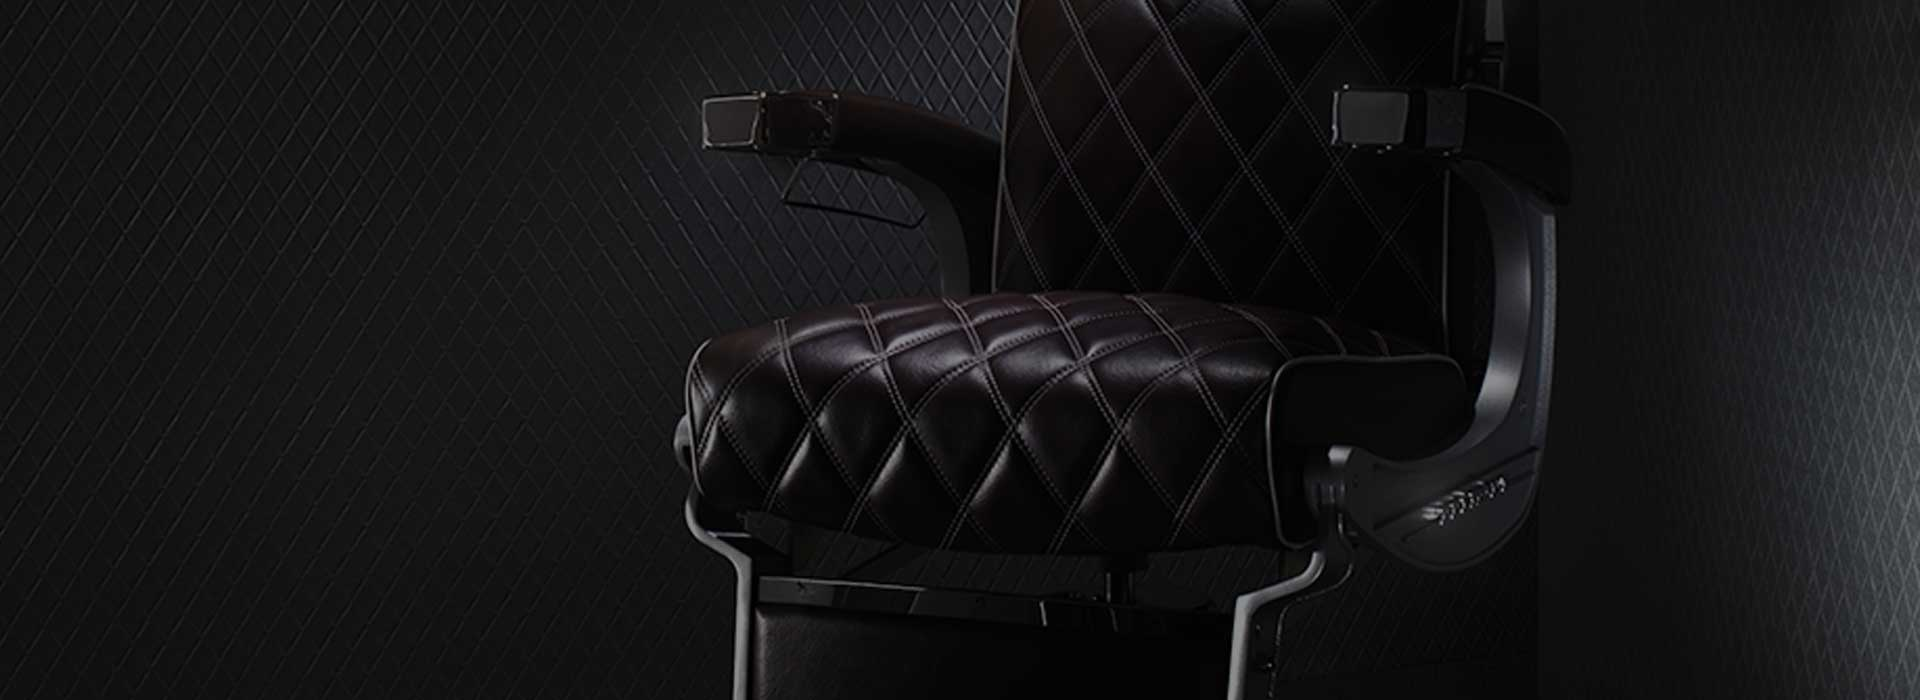 TakaraB- close up barber chair